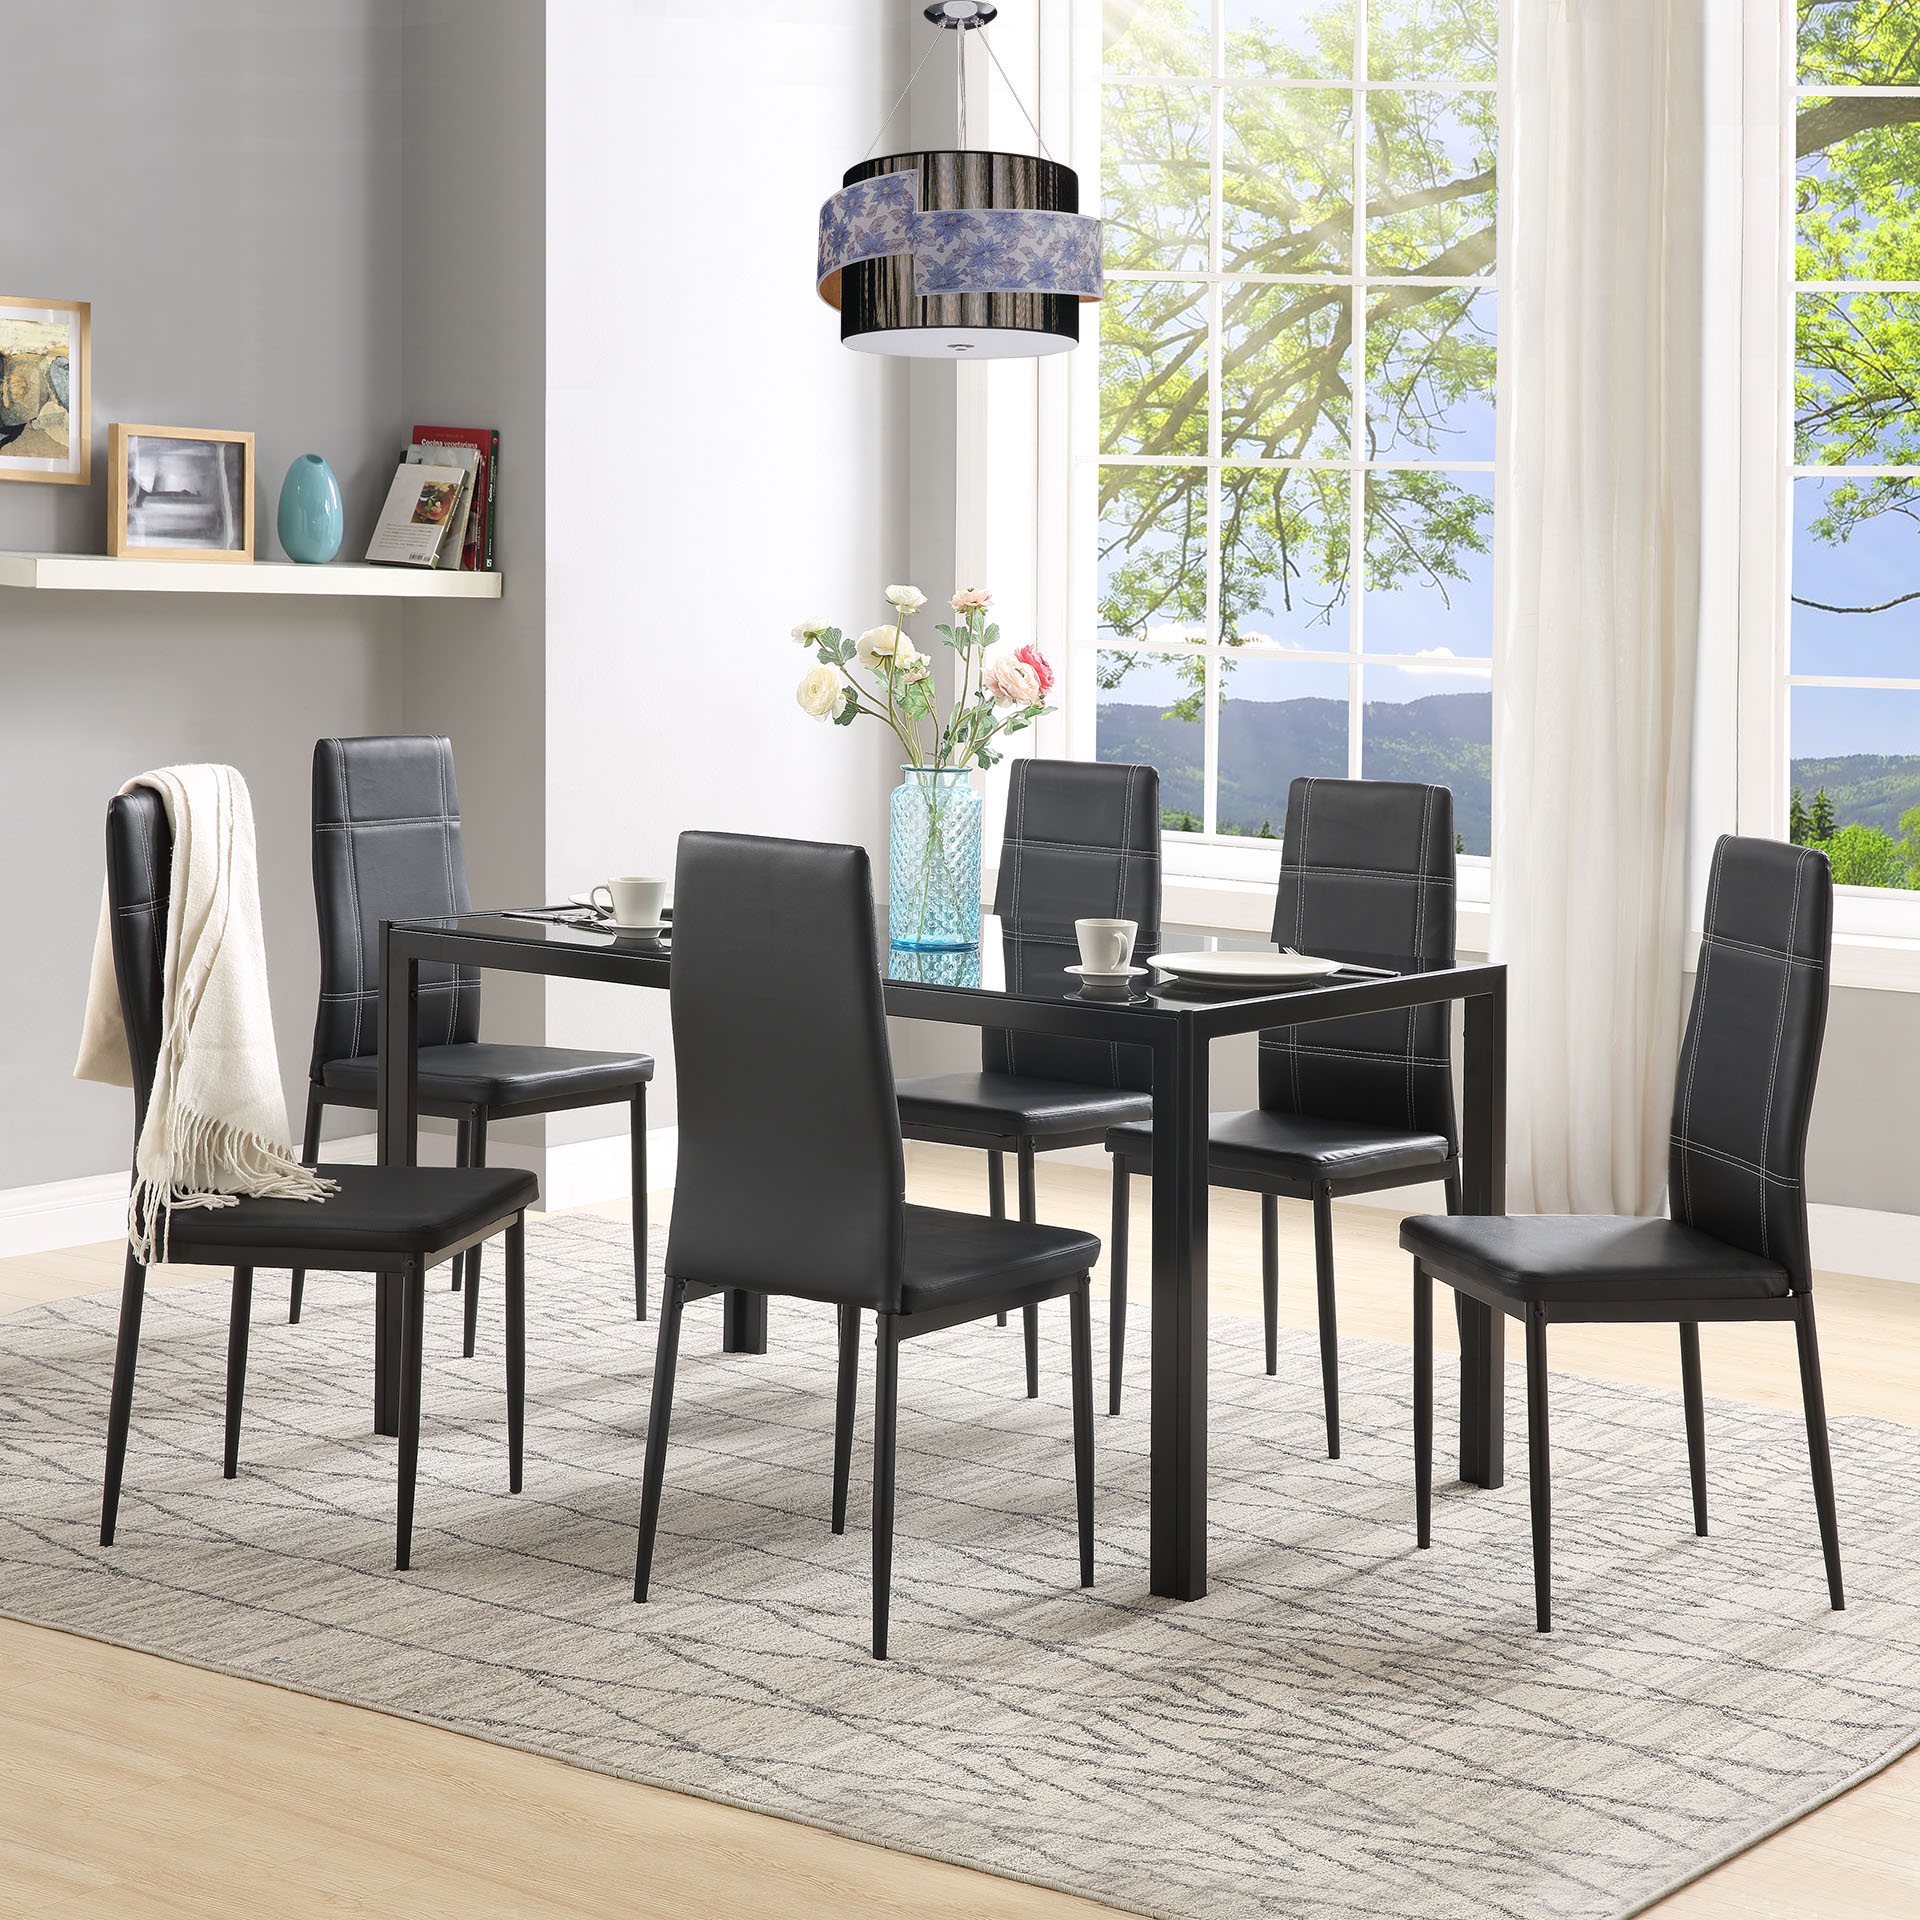 Kitchen Dining Table Set For 6 Modern Glass Dining Room Table Set With 6pcs Leather Bistro Chairs Contemporary Kitchen Breakfast Nook Rectangle Dining Table And Chairs Set For Small Space A180